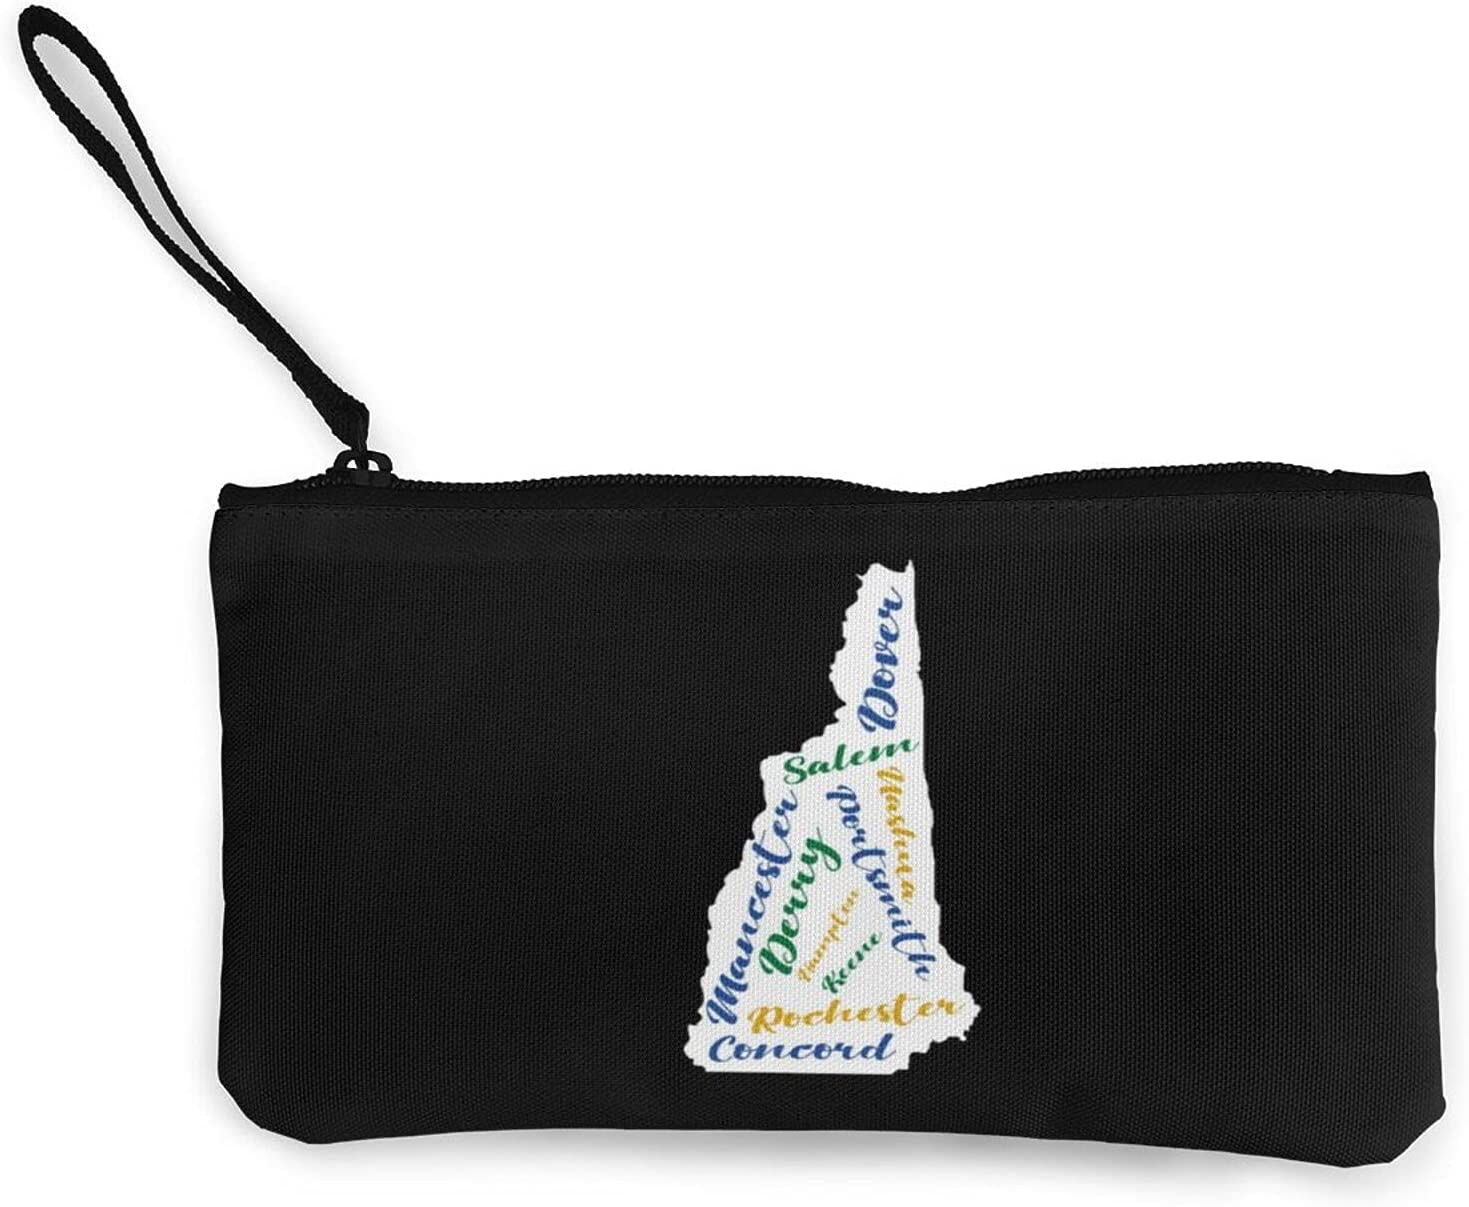 New Hampshire Cities Word Art Multifunction Travel Toiletry Pouch Small Canvas Coin Wallet Bag Zipper